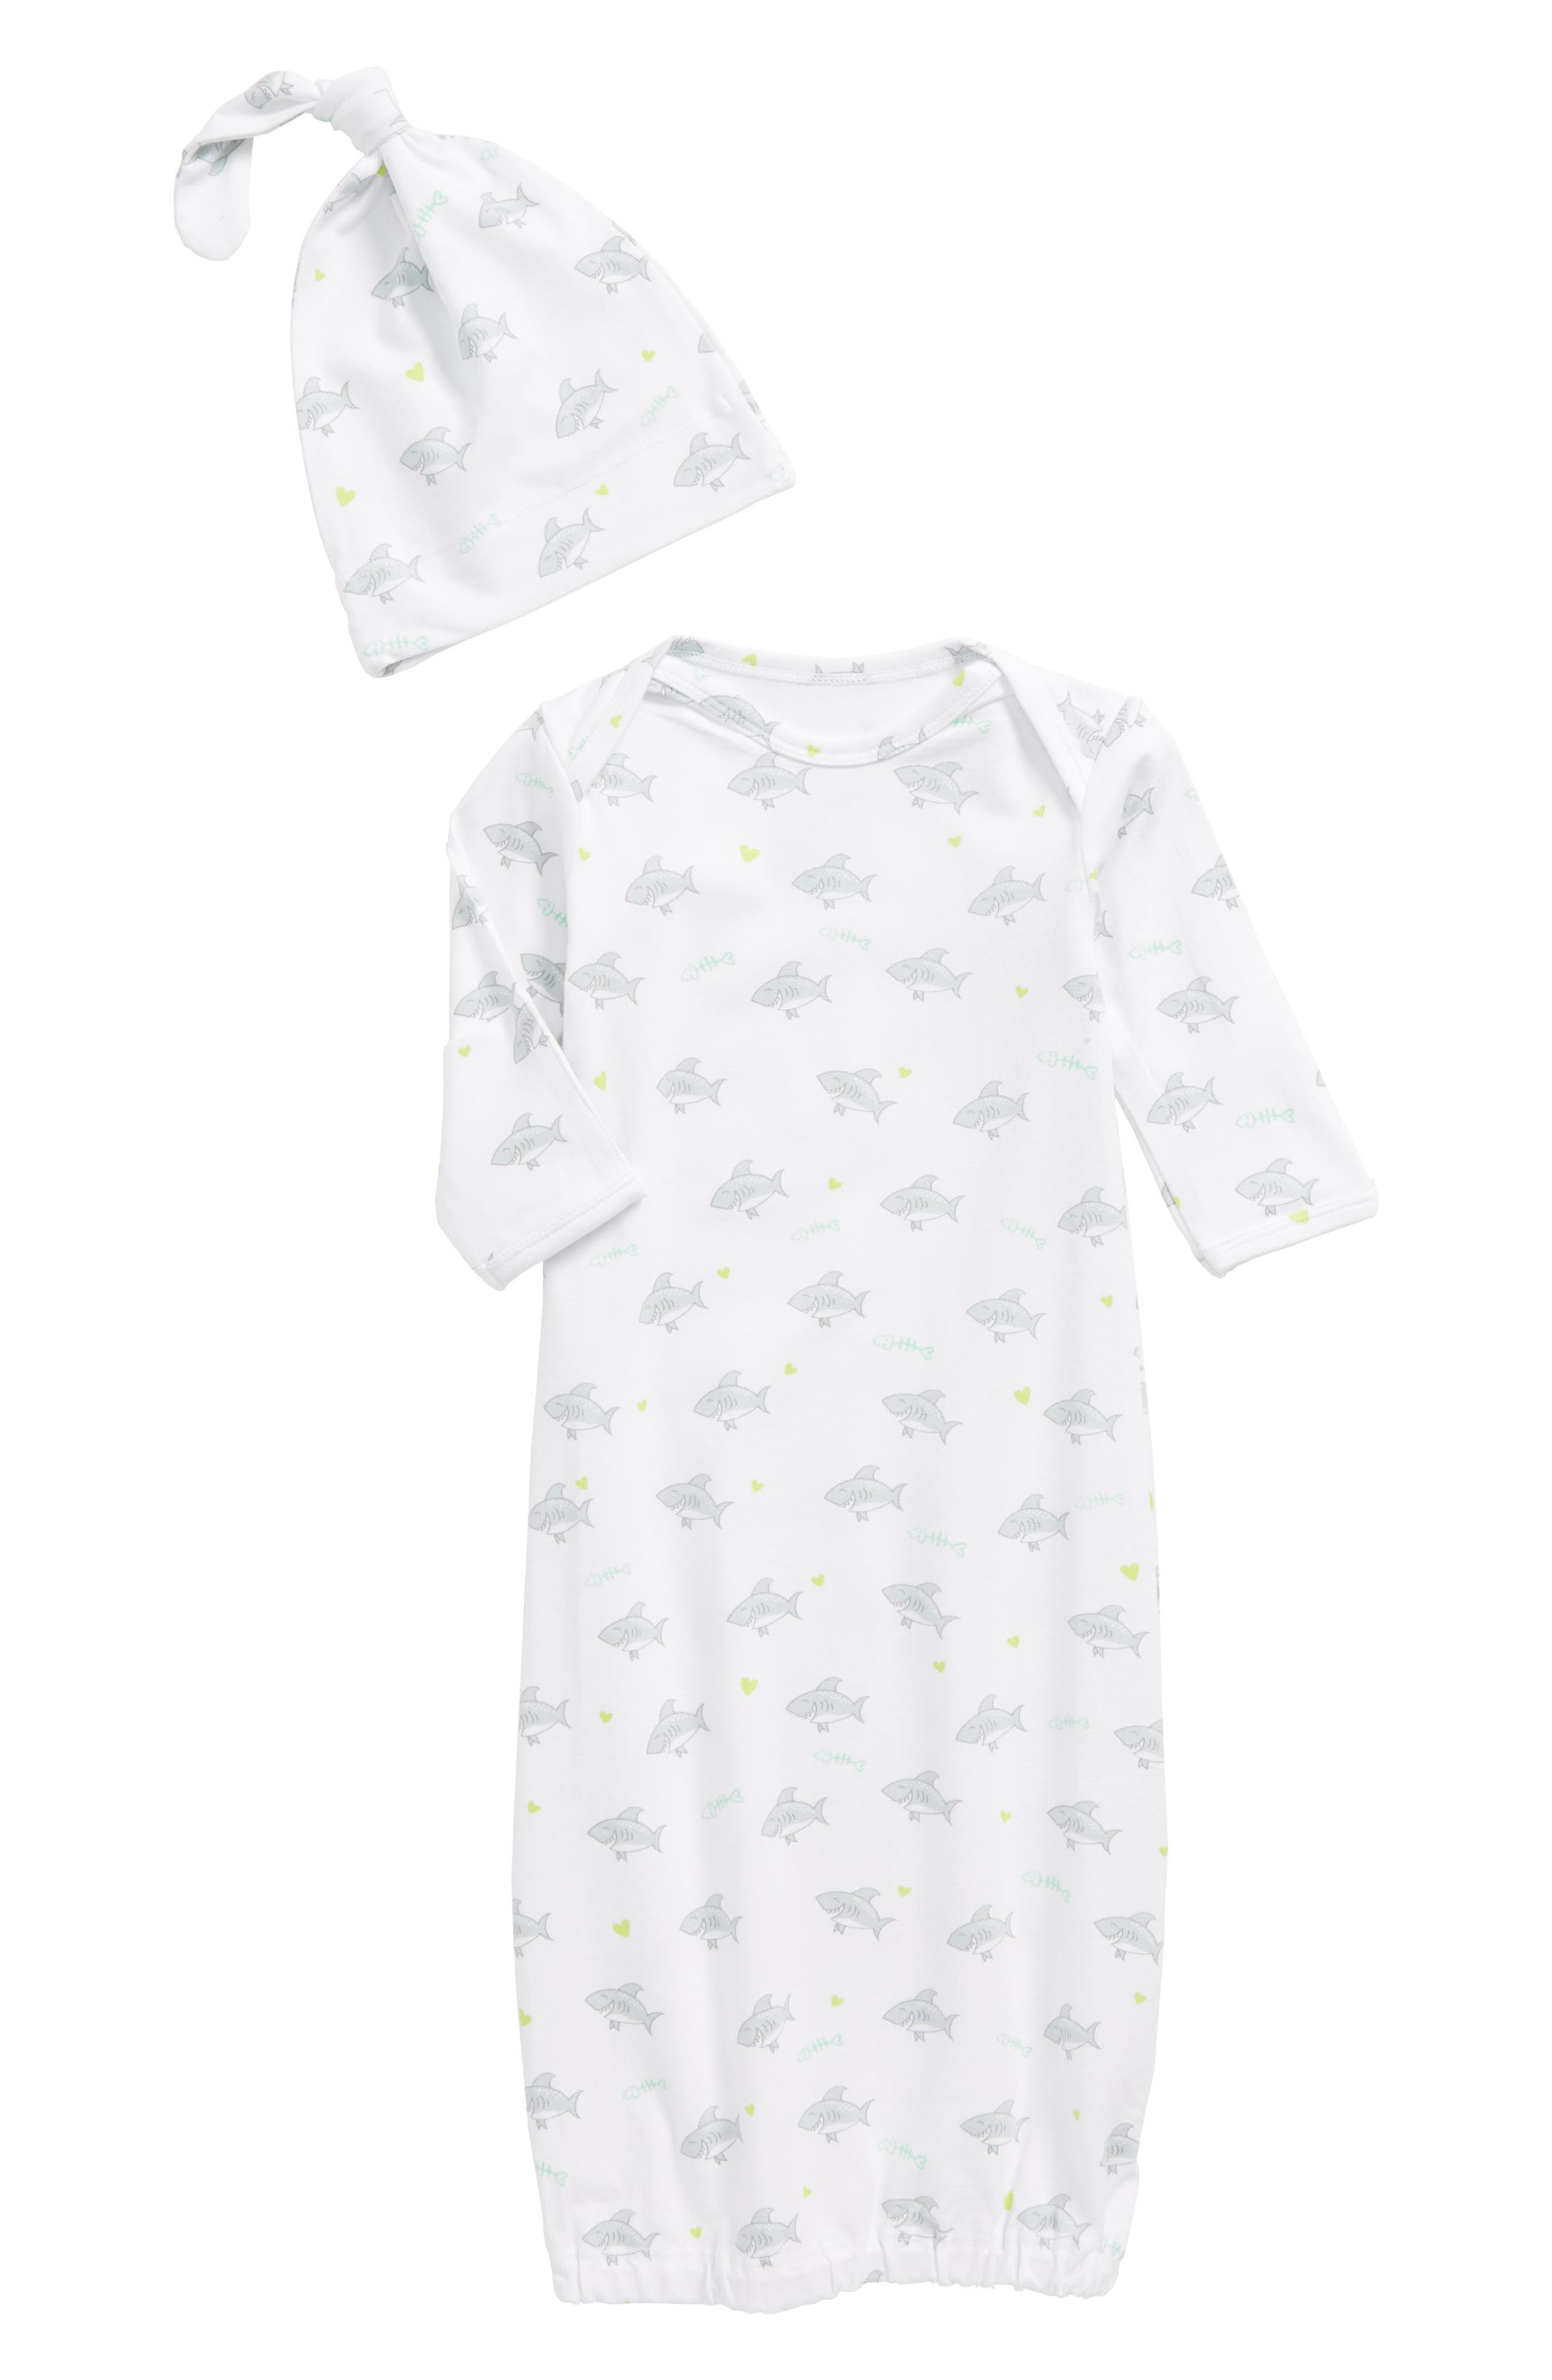 Main Image - Coco Moon Shark Gown & Hat Set (Baby)